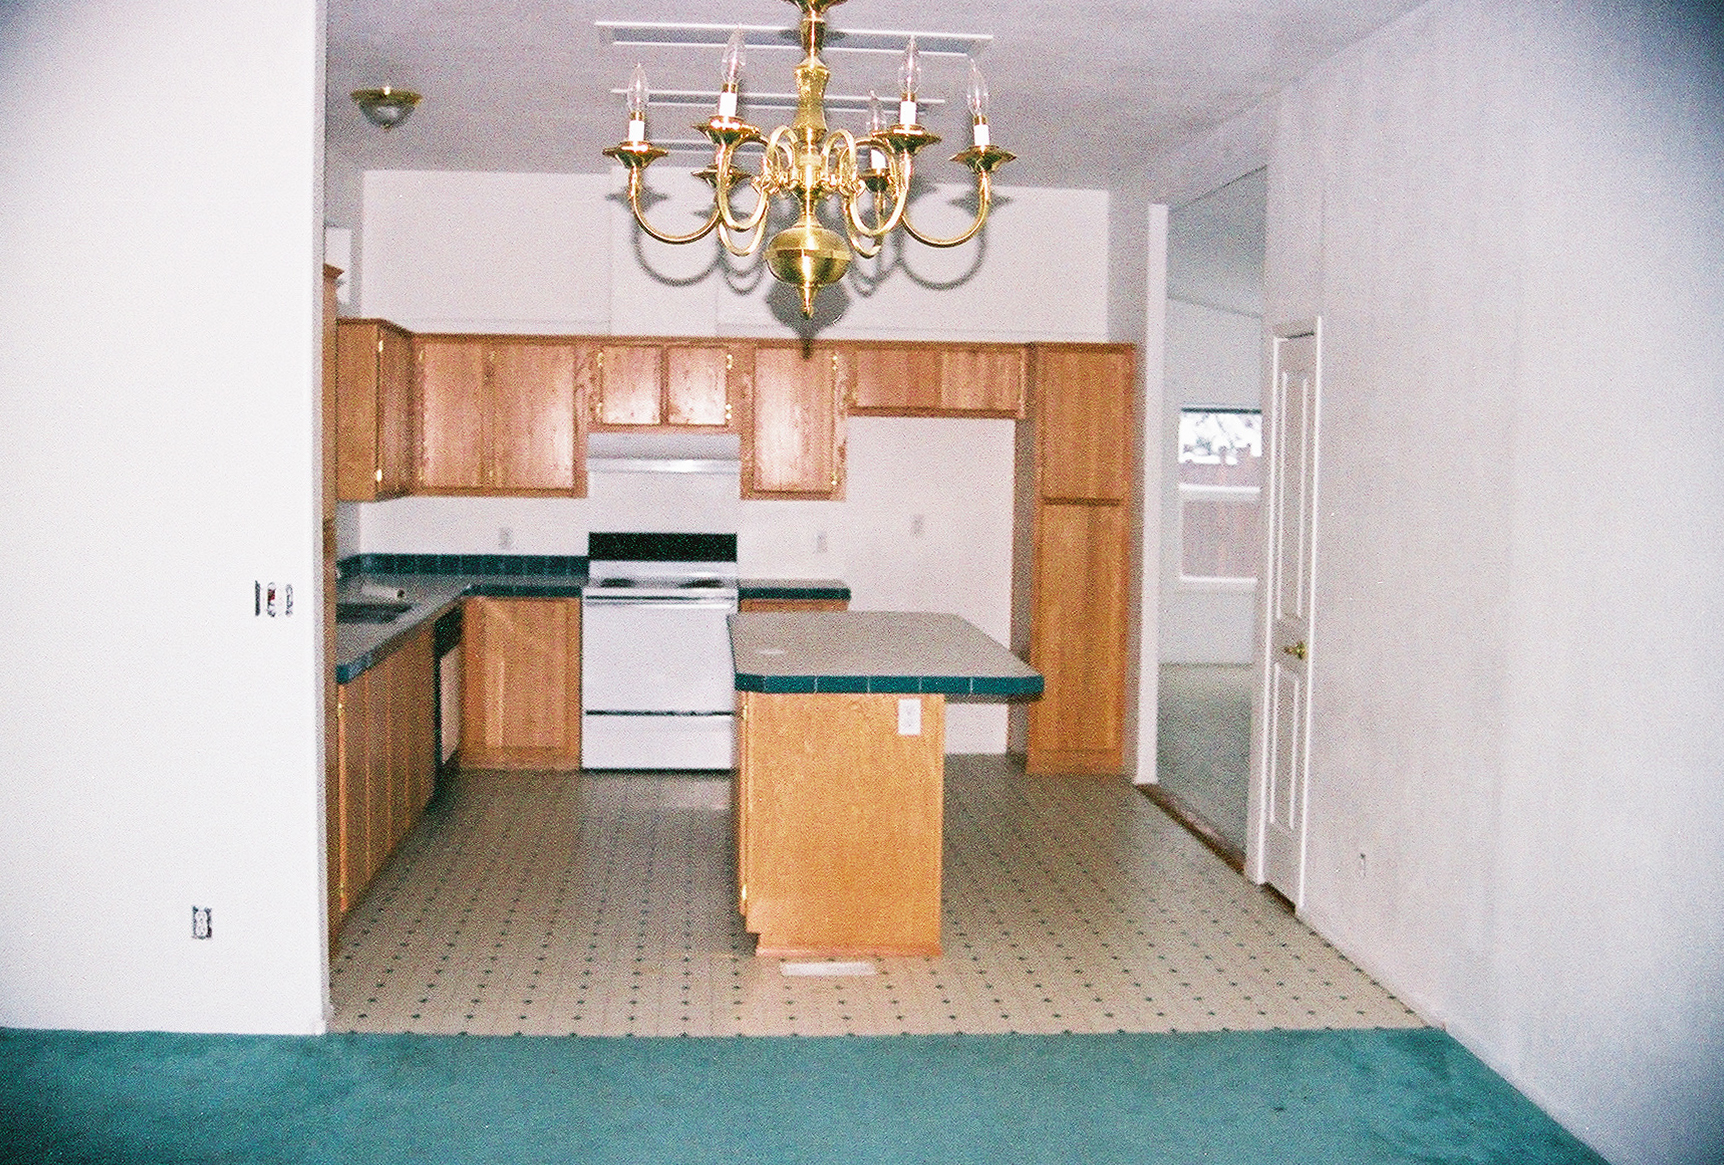 This is how it looked in 2003 when we moved here.